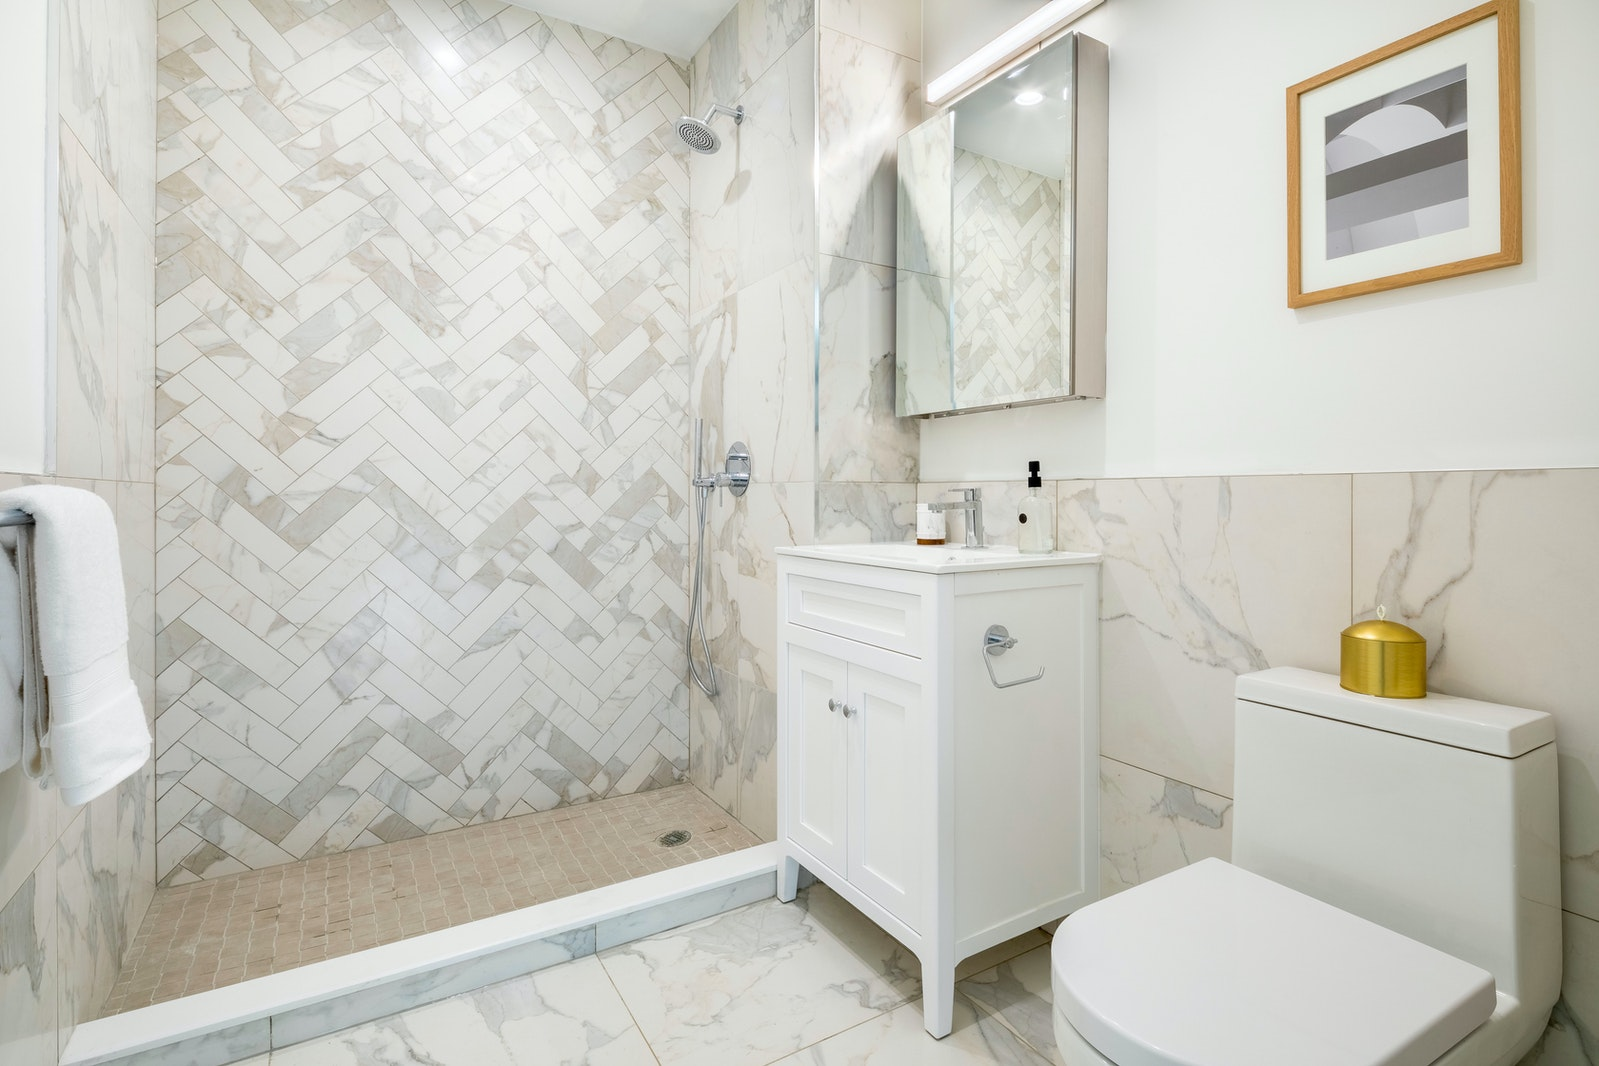 65 Irving Pl 2, Clinton Hill, Brooklyn, NY, 11238, $1,250,000, Property For Sale, Halstead Real Estate, Photo 7